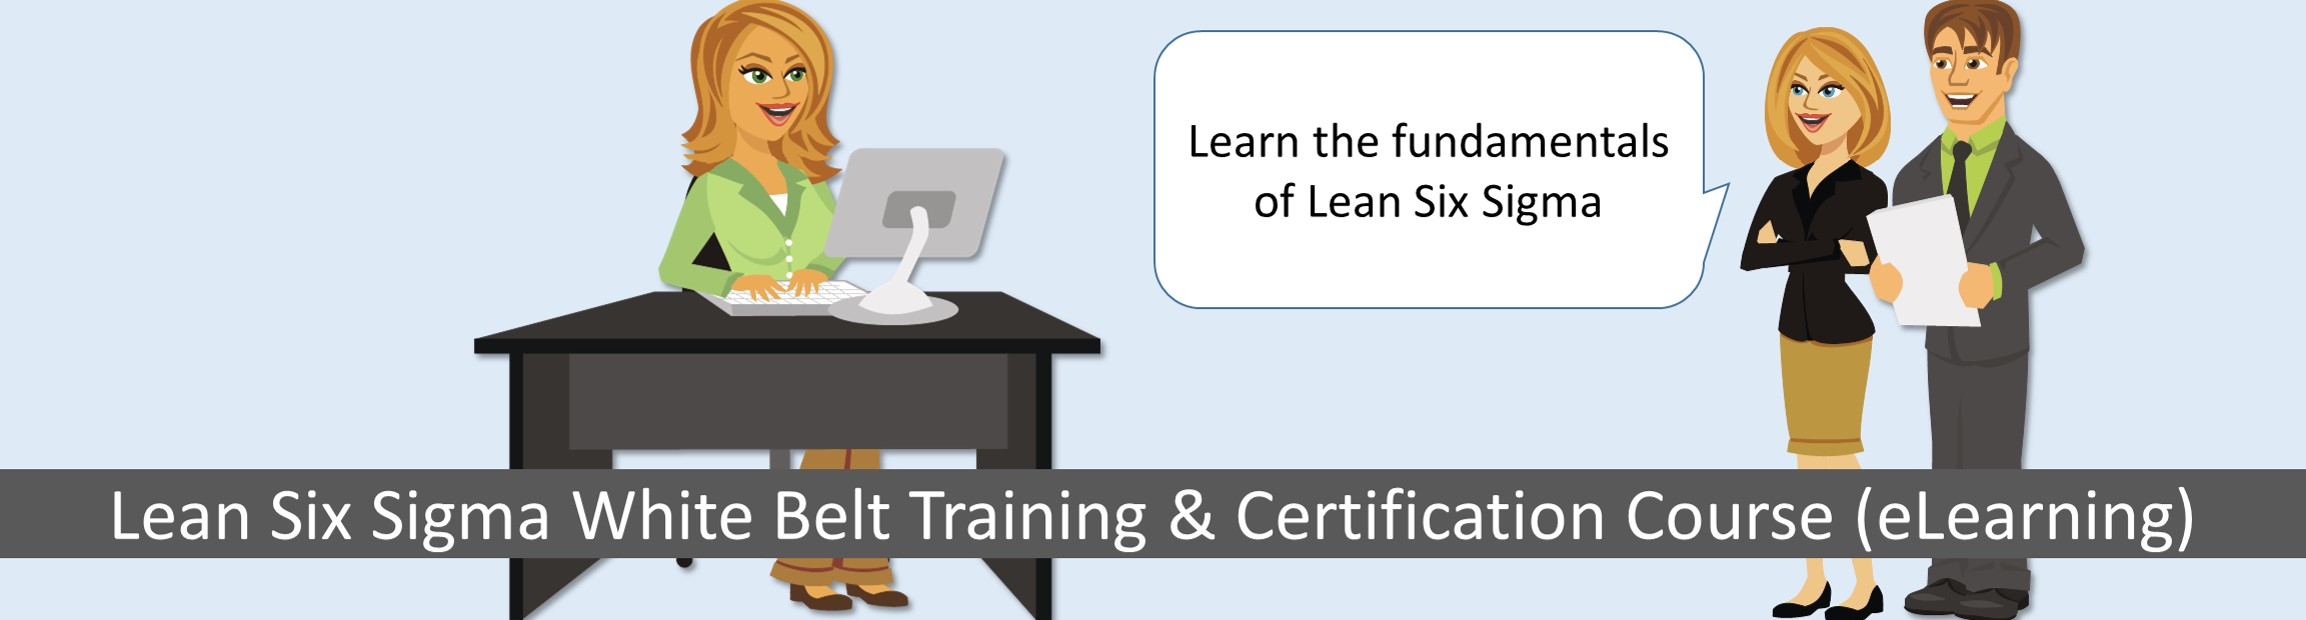 Lean Six Sigma White Belt Training Certification Course